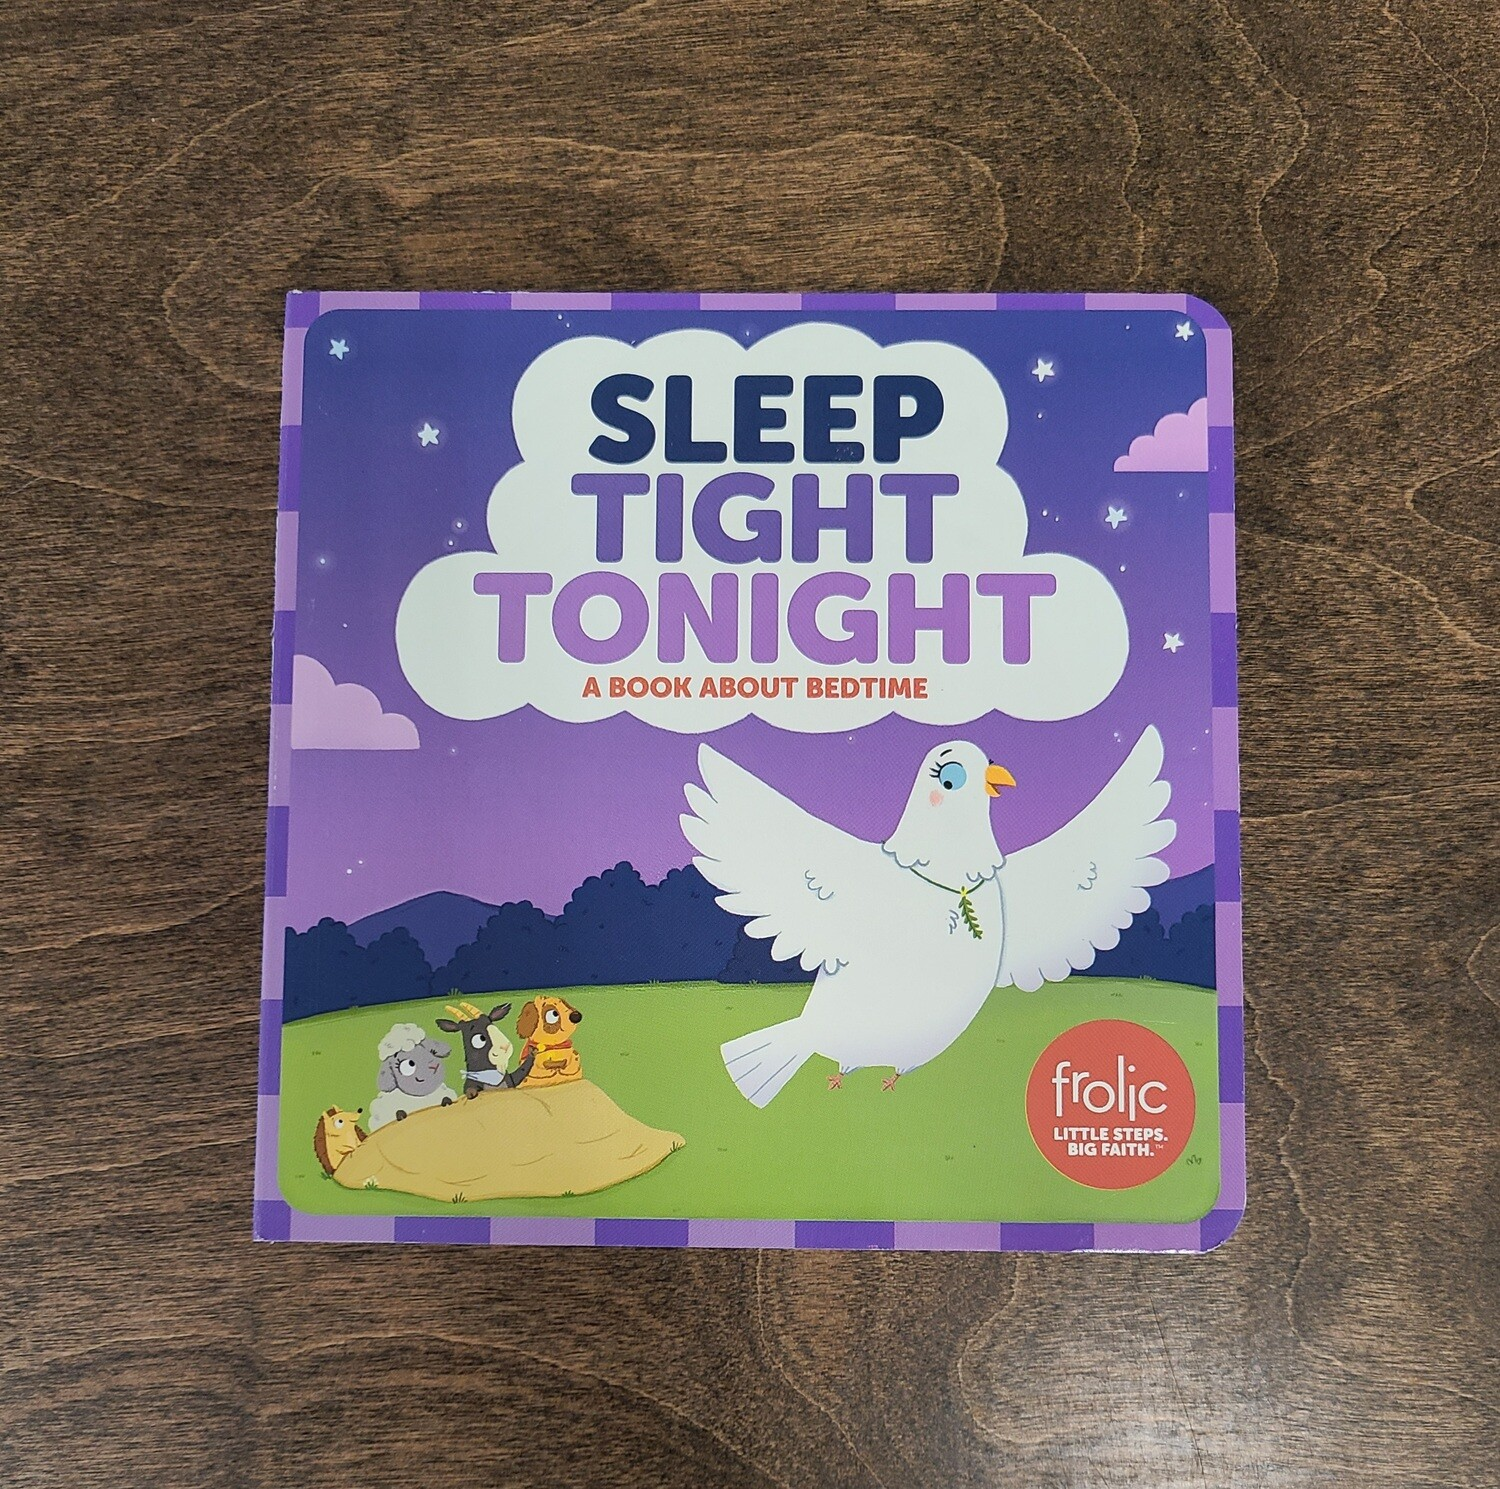 Sleep Tight Tonight: A Book About Bedtime by Kristen McCurry and Jennifer Hilton